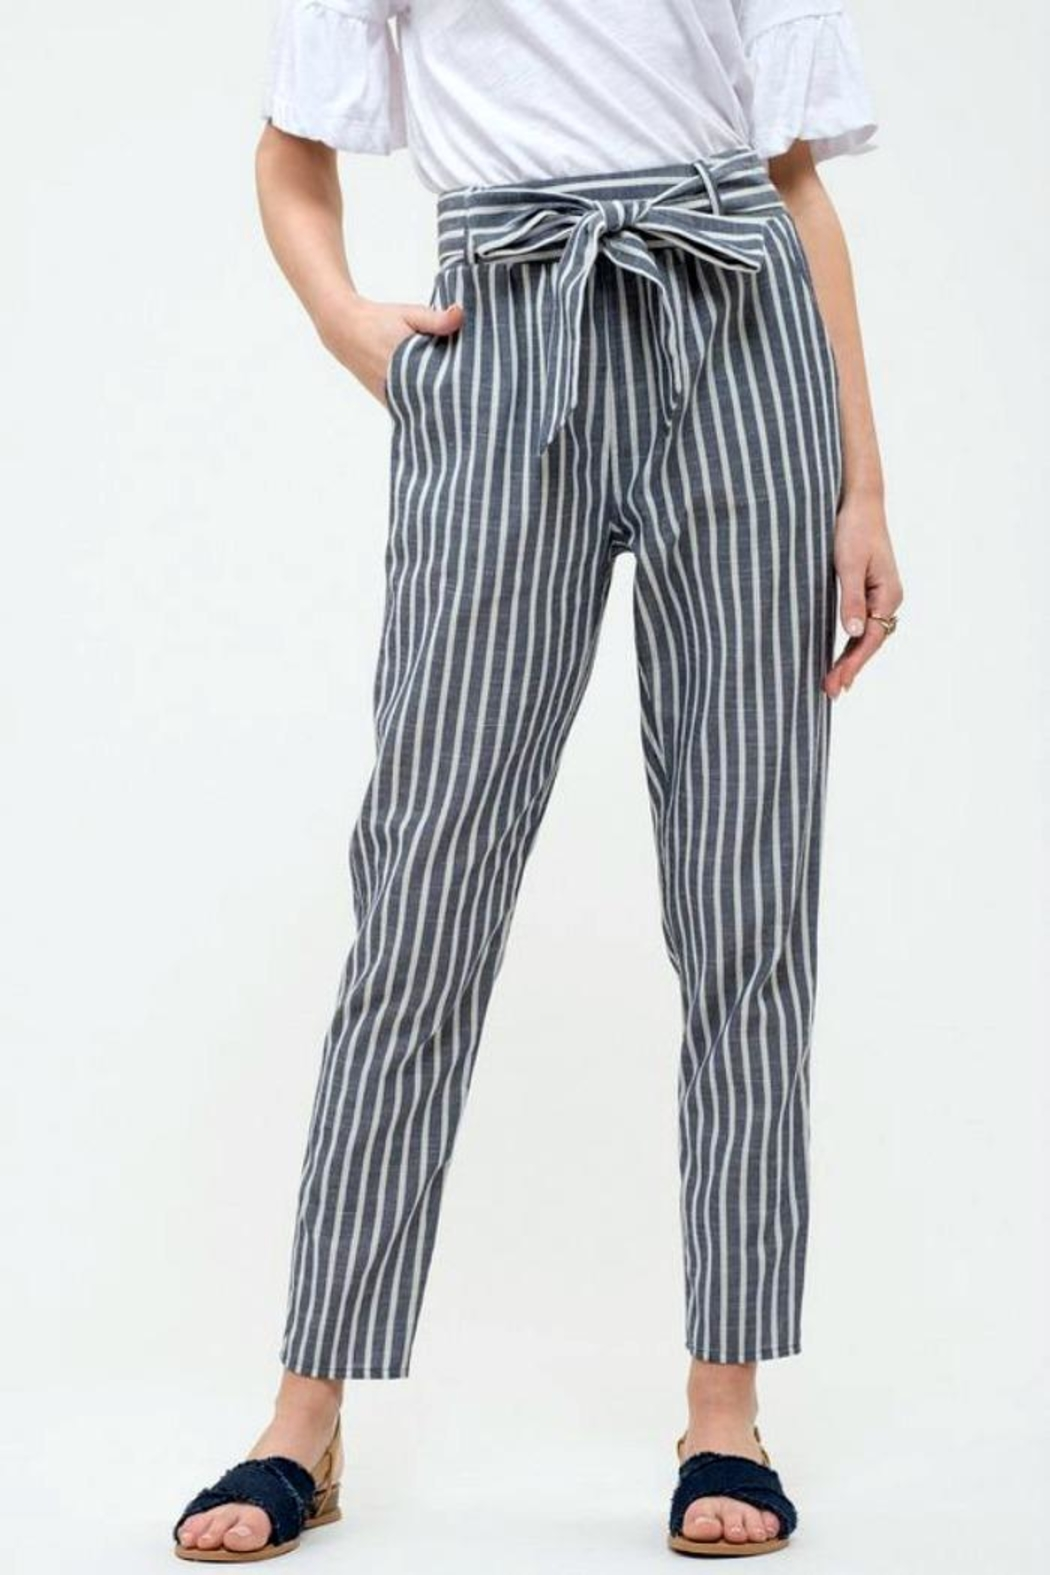 Blu Pepper Tie Striped Pants - Main Image